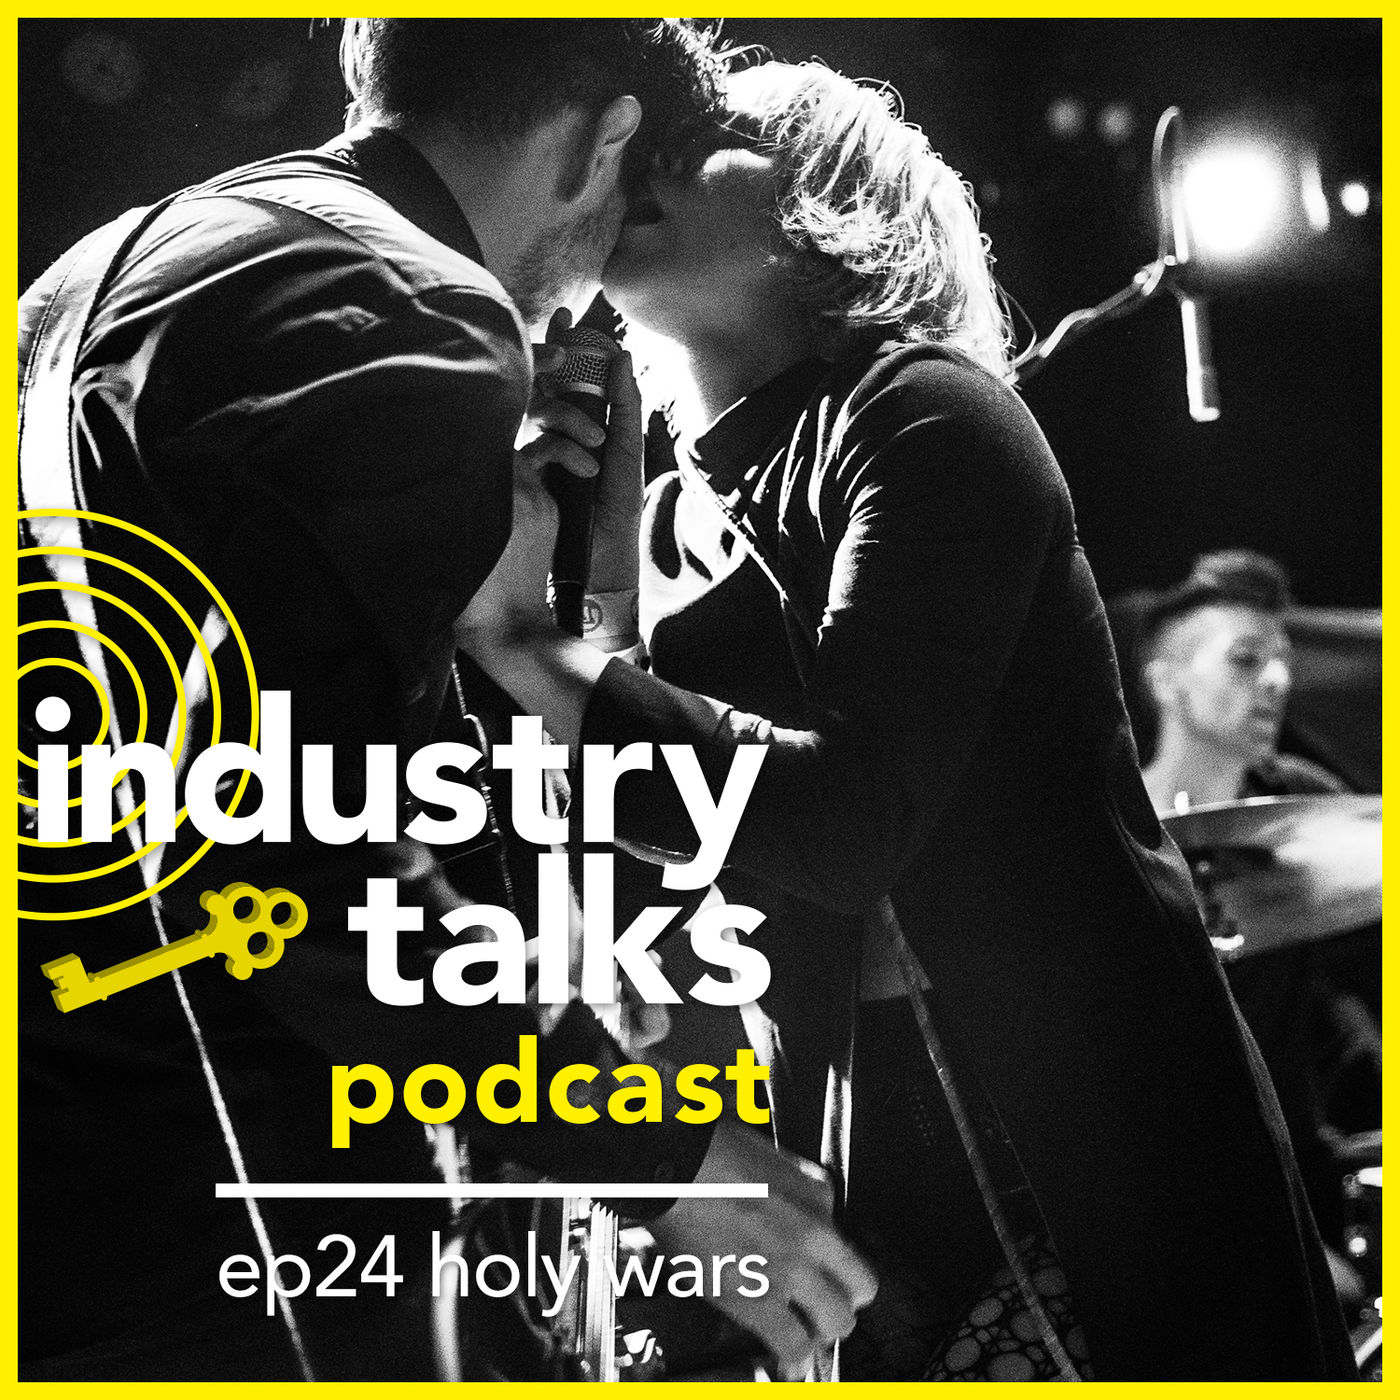 Industry Talks Podcast ep24 - Holy Wars on Building a Career in Sync with Friends in Dark Places